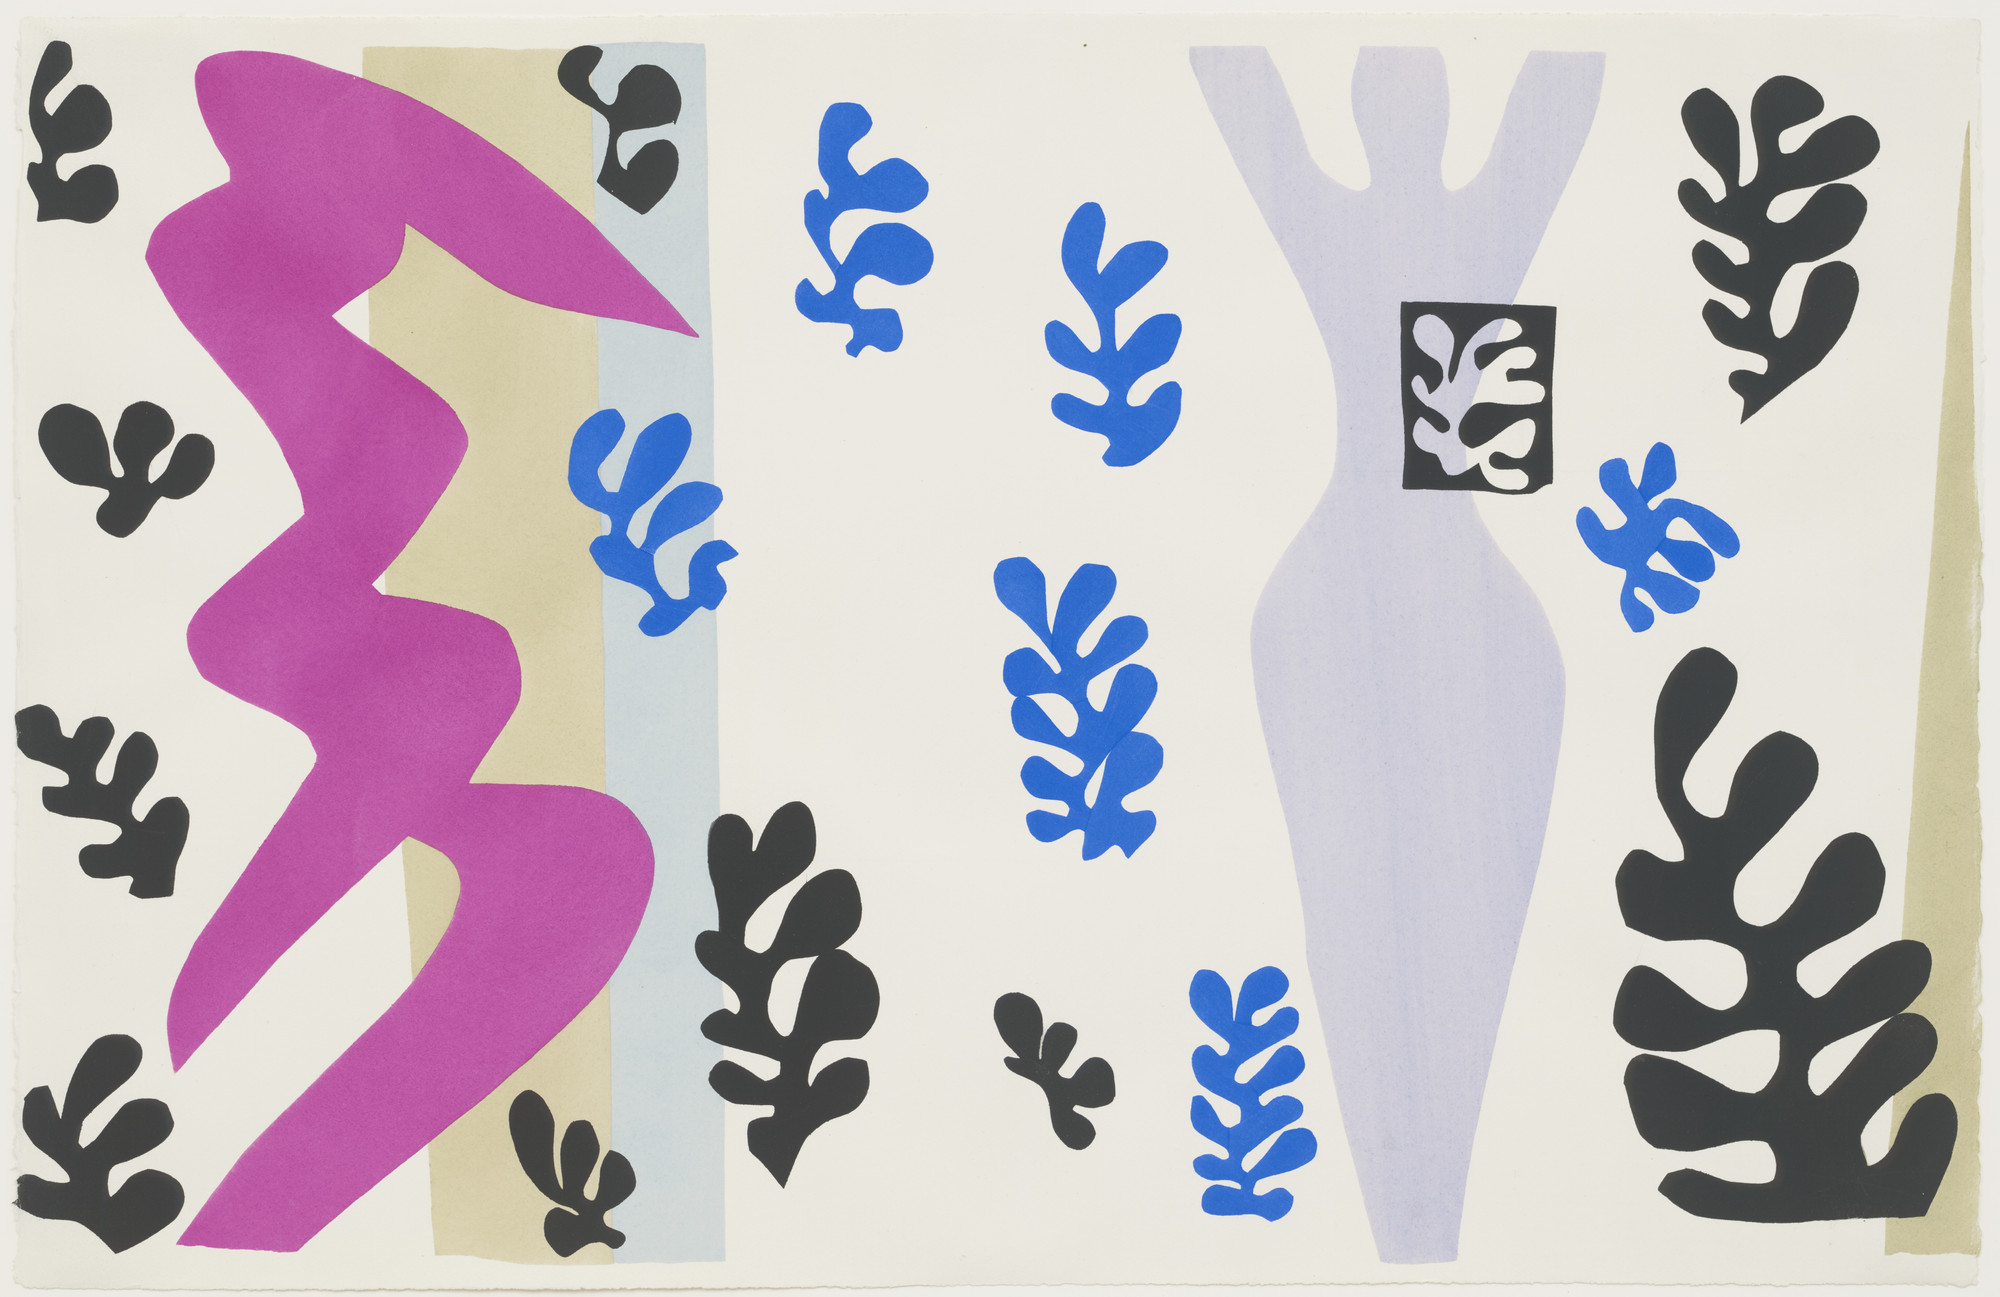 Henri Matisse. The Knife Thrower (Le Lanceur de couteaux) from Jazz. 1947